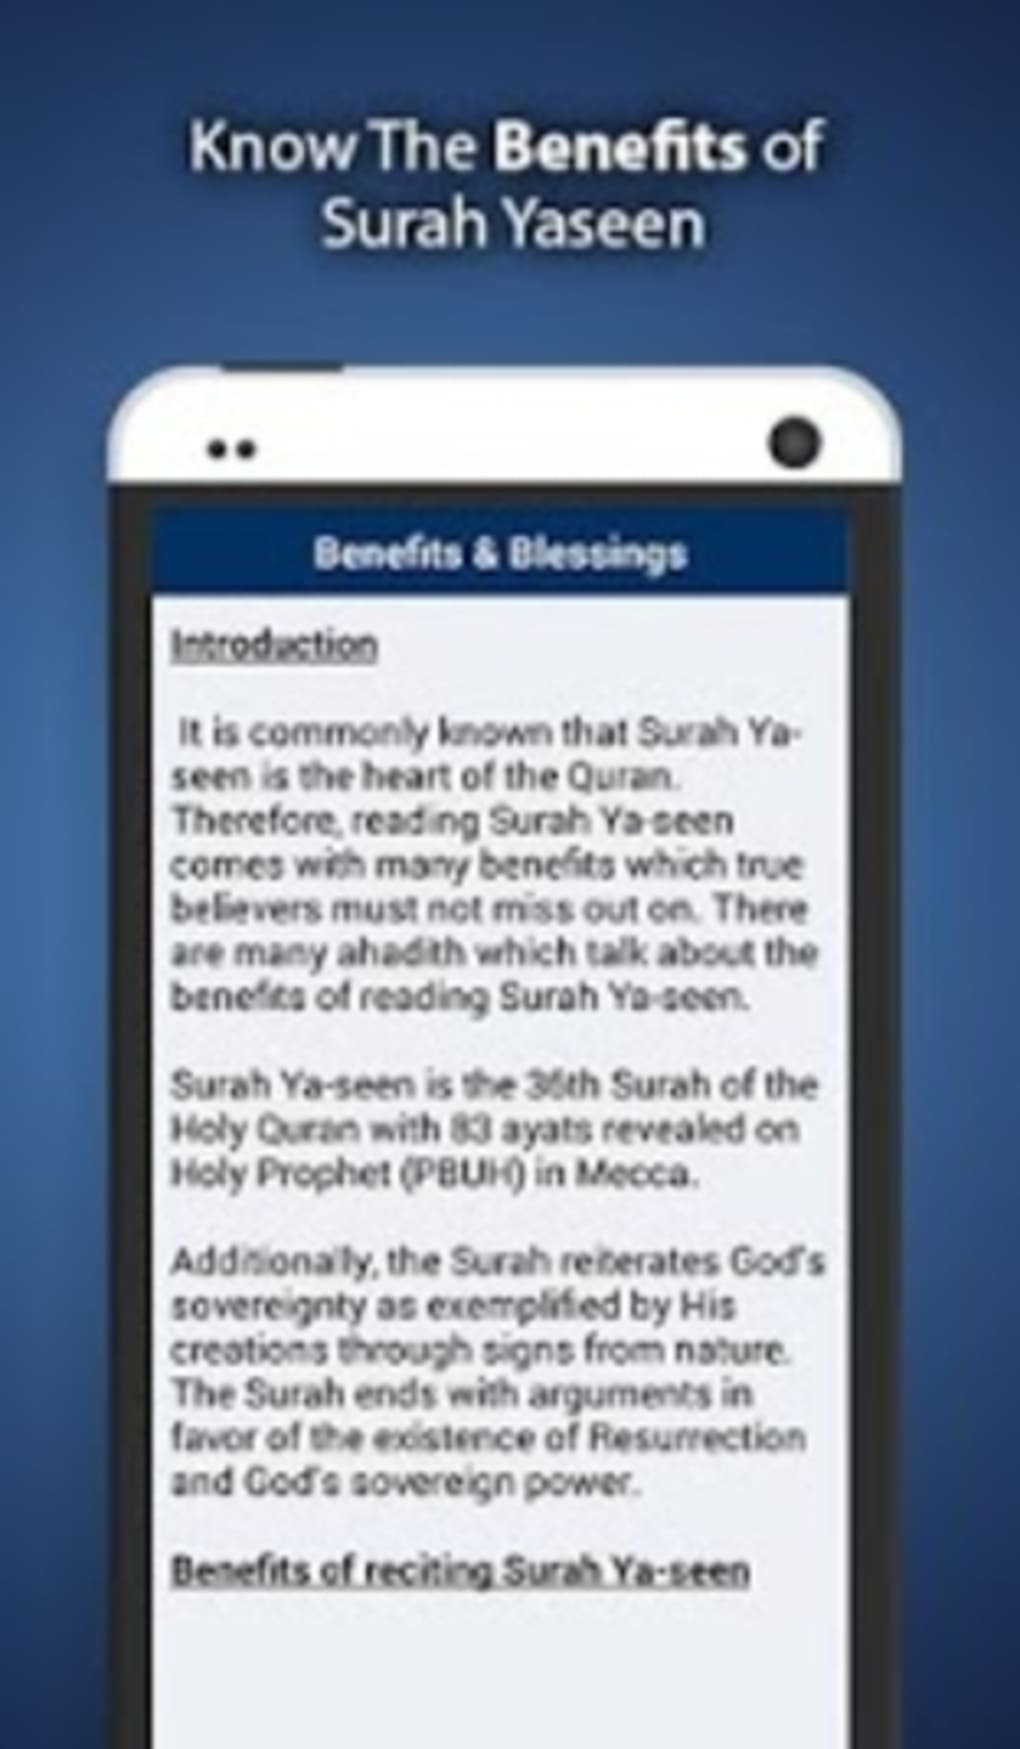 Surah Yaseen for Android - Download